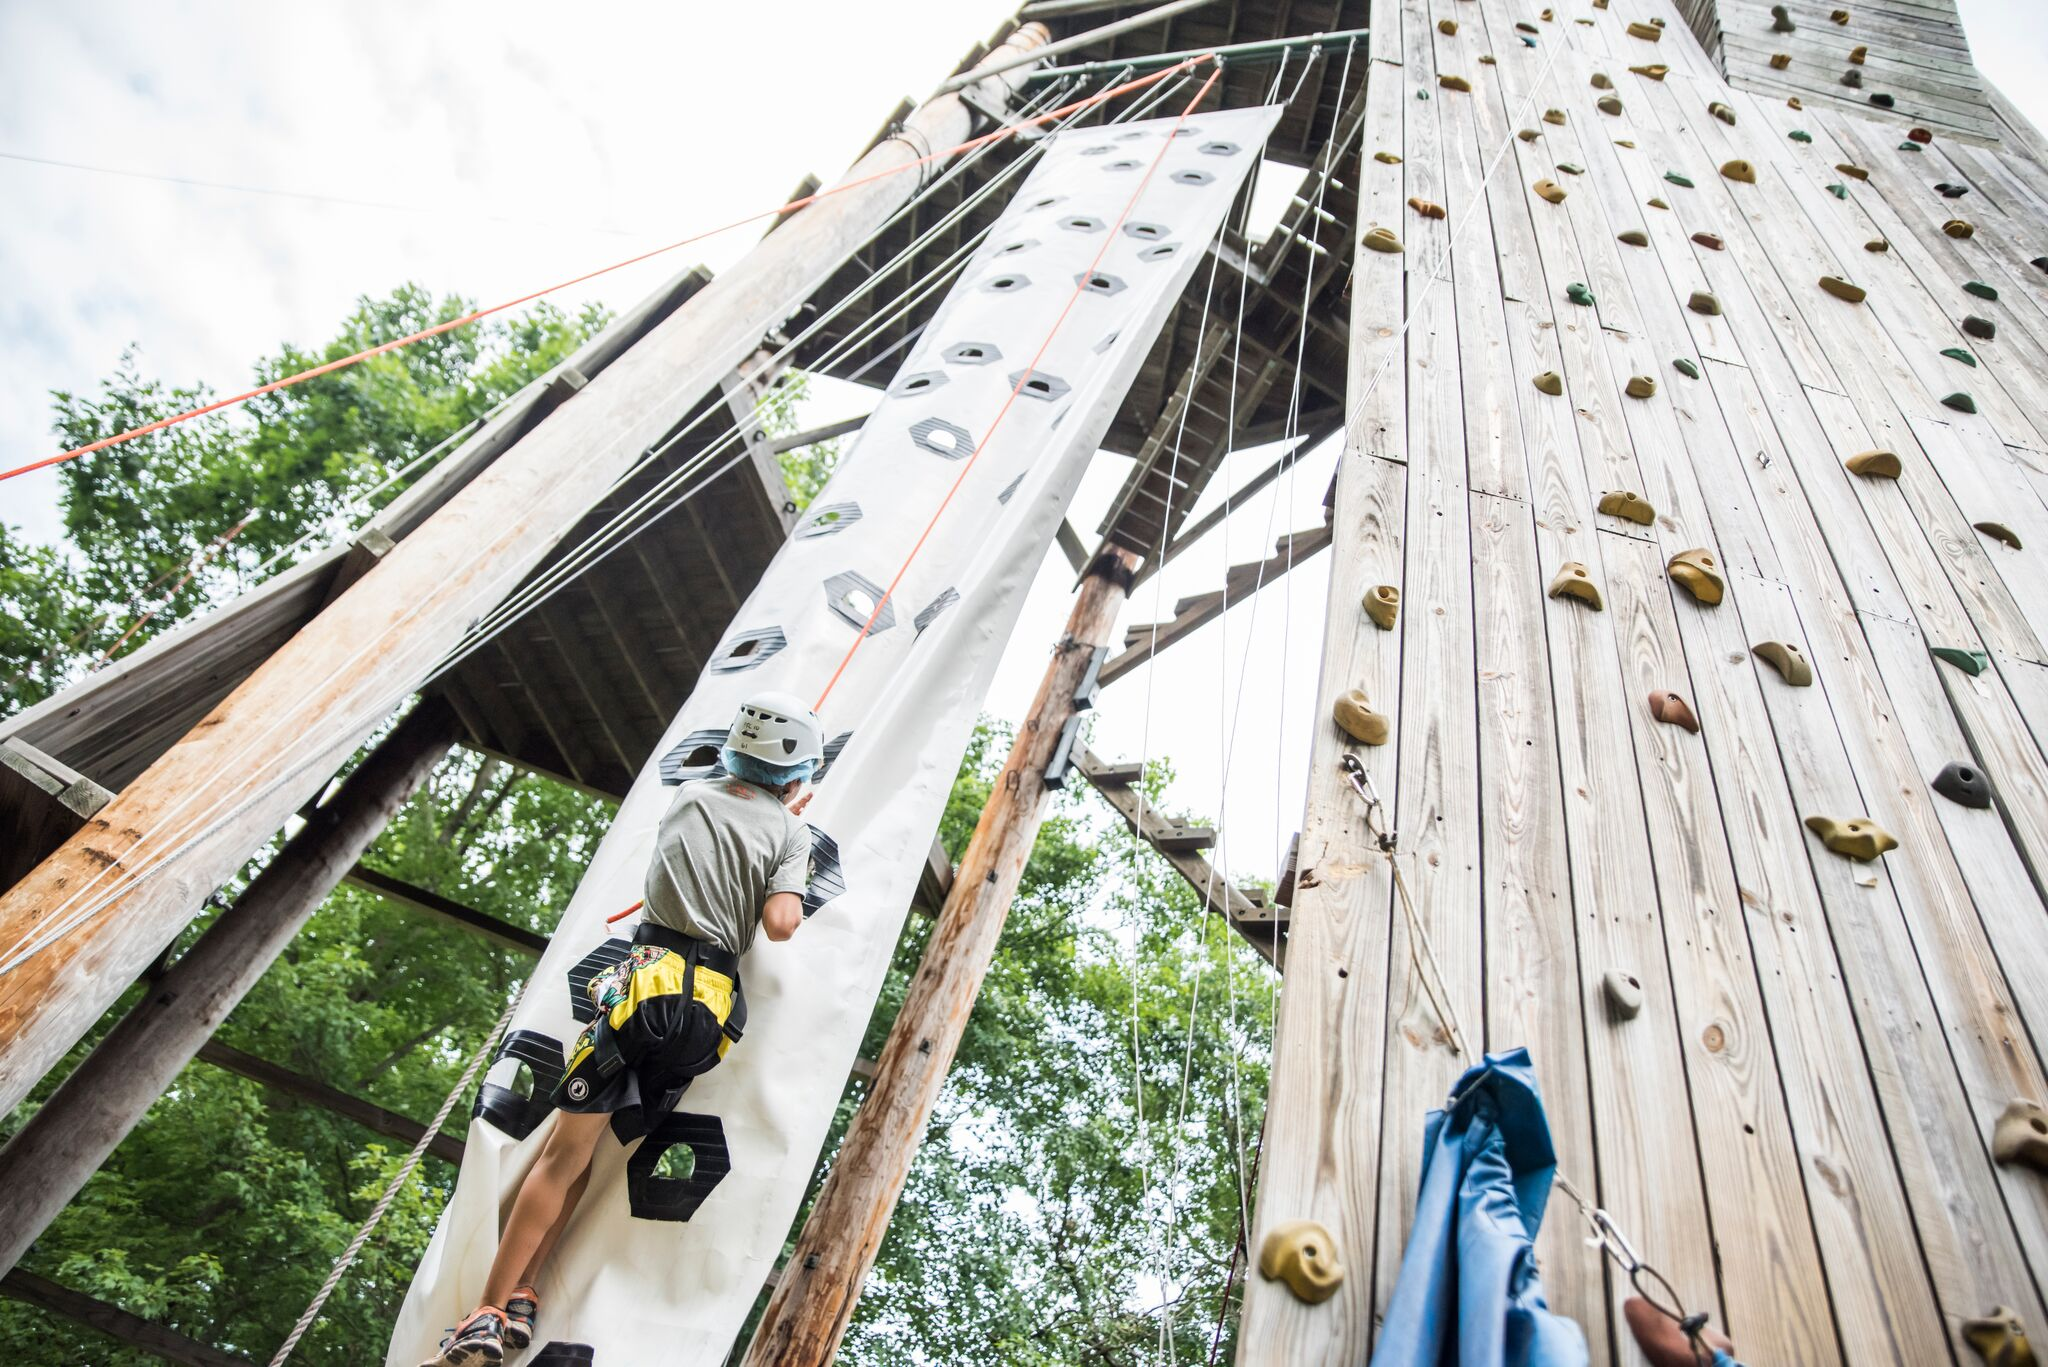 Climbing wall at Pine Forest Camp